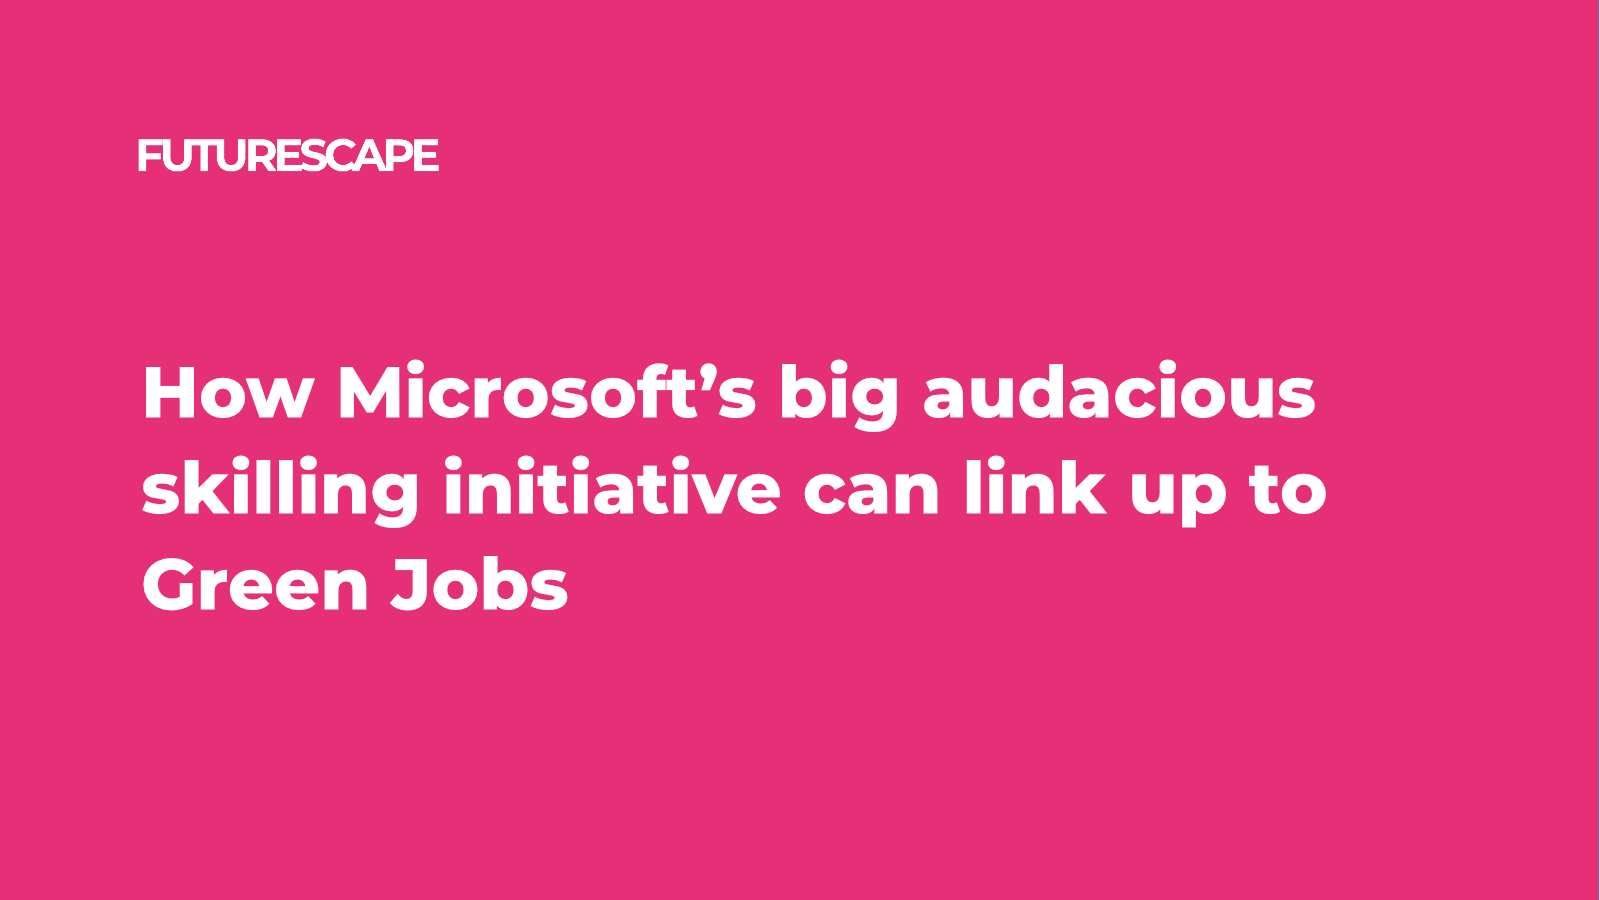 How Microsoft's big audacious skilling initiative can link up to Green Jobs